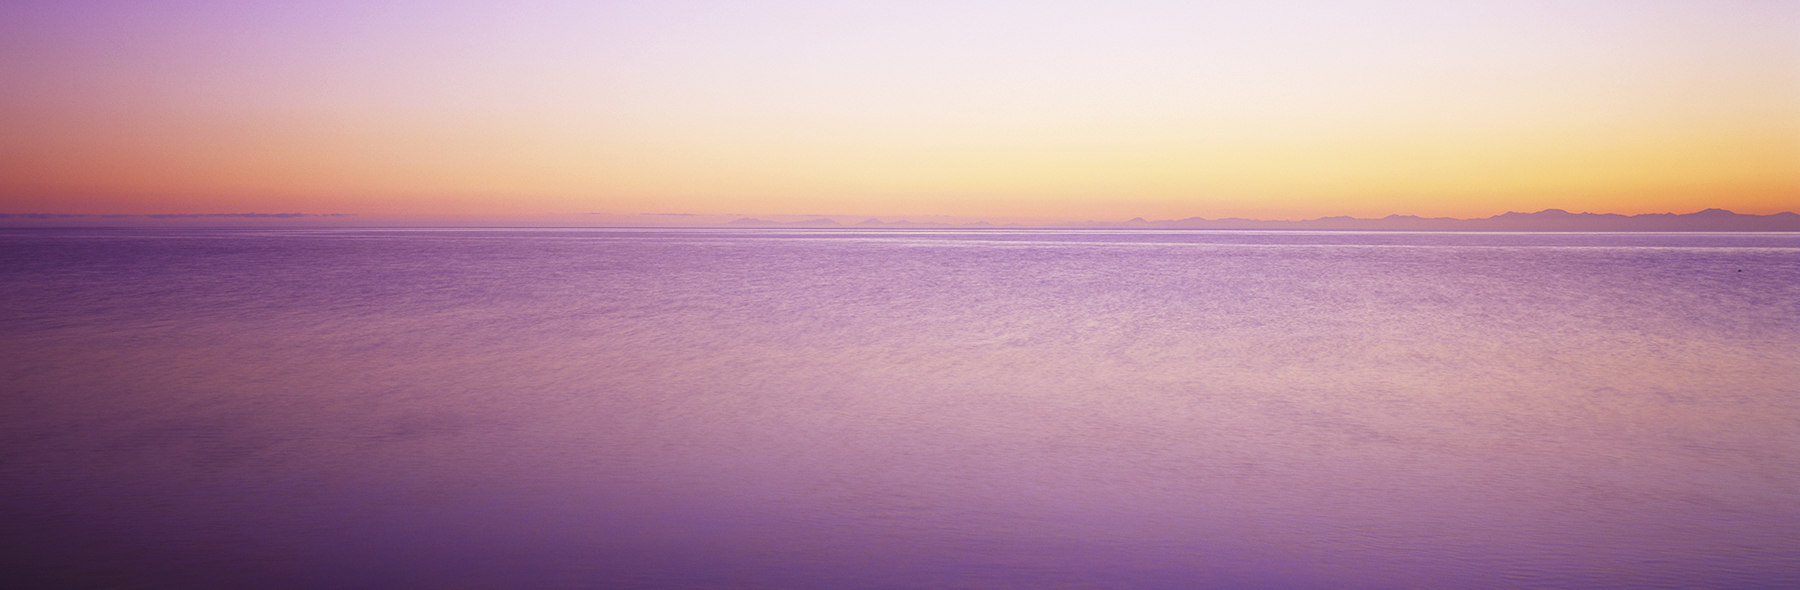 Bliss, Abel Tasman National Park, New Zealand. A Limited Edition Fine Art Landscape Photograph by Richard Hume